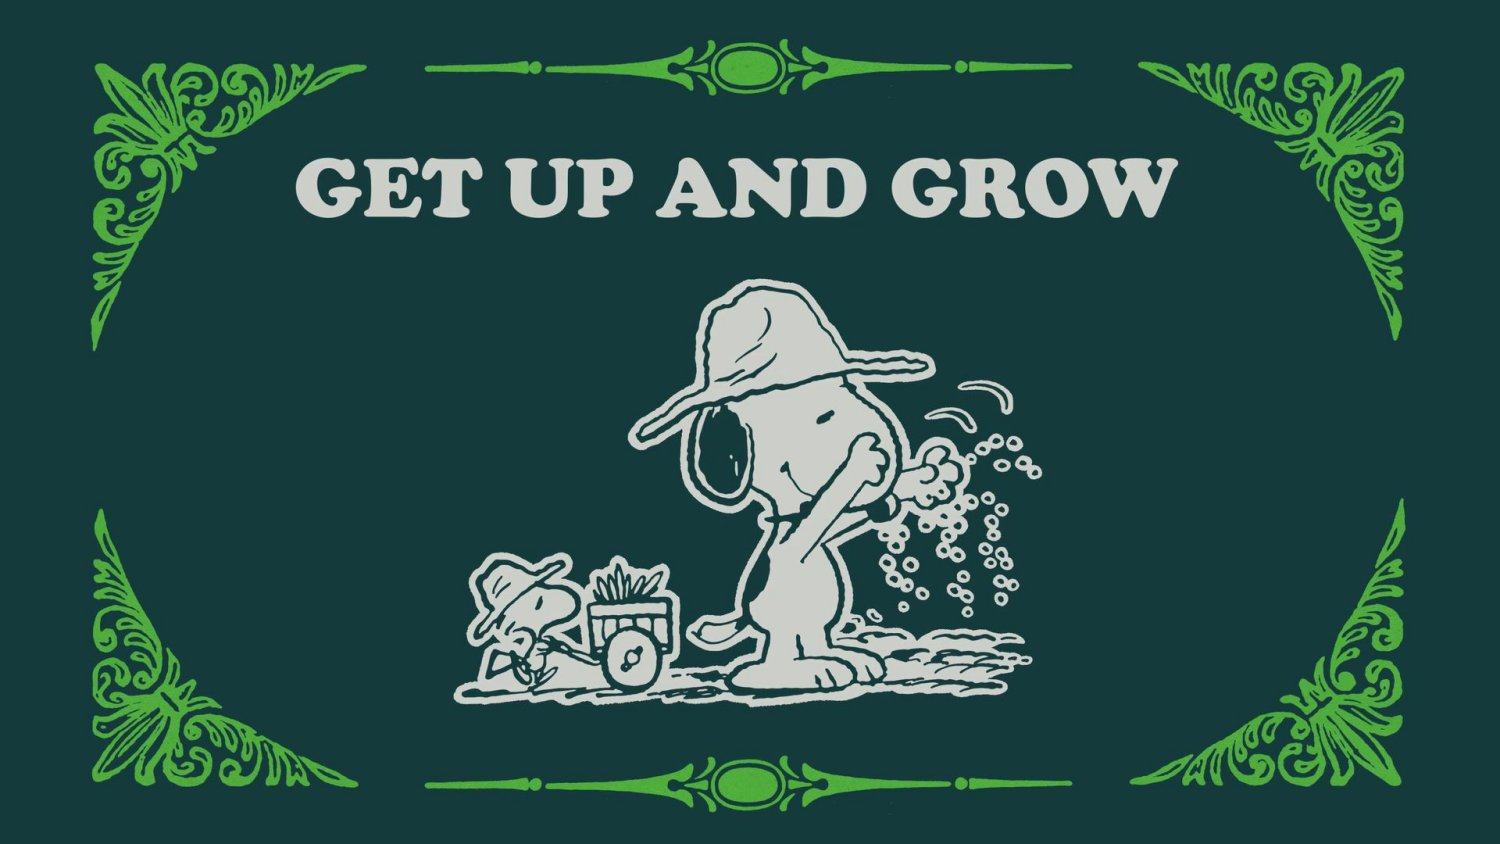 Take Care with Peanuts Get Up and Grow